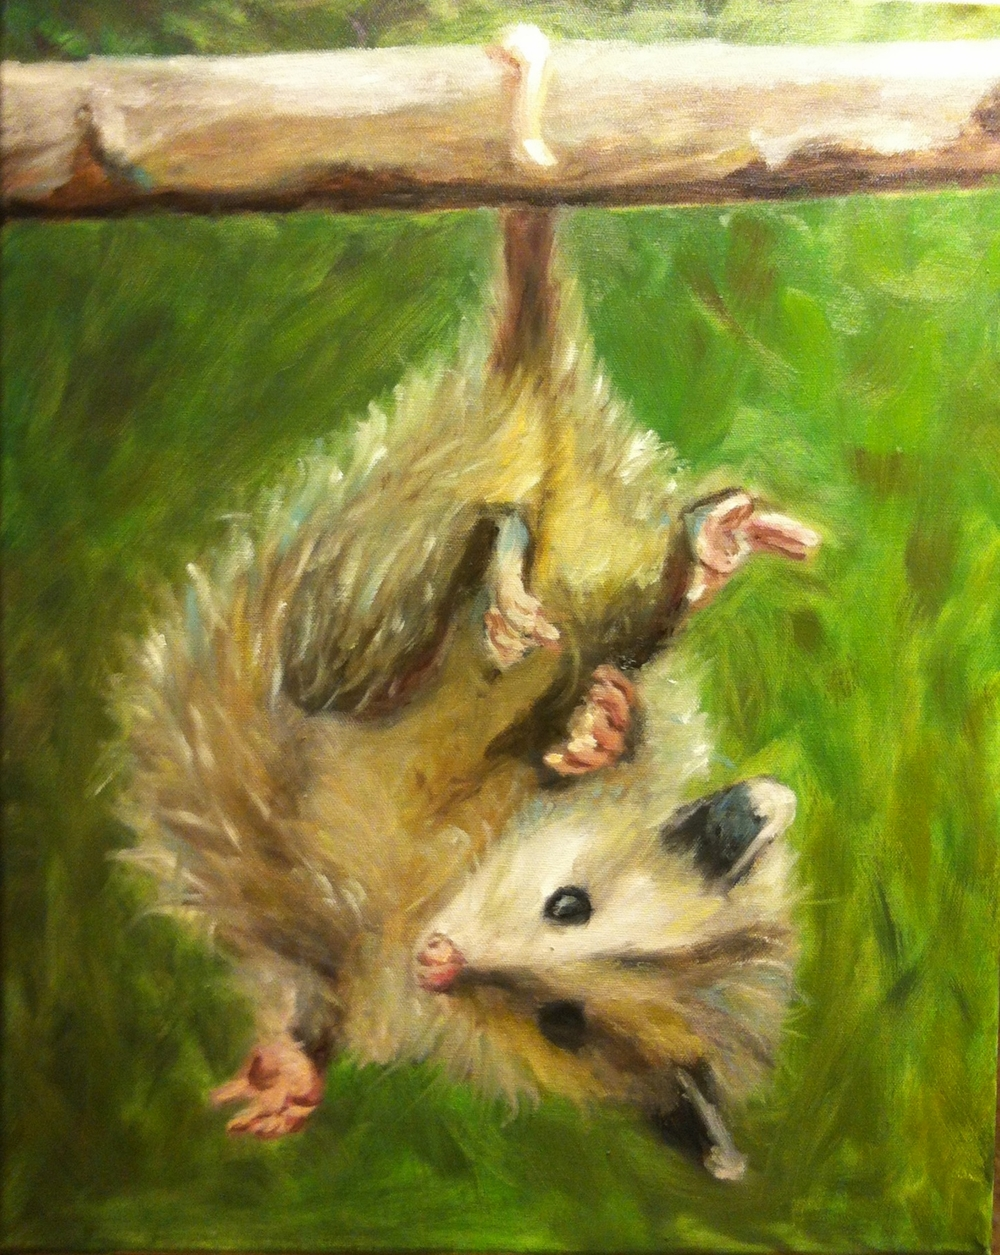 Opossum for the Nest